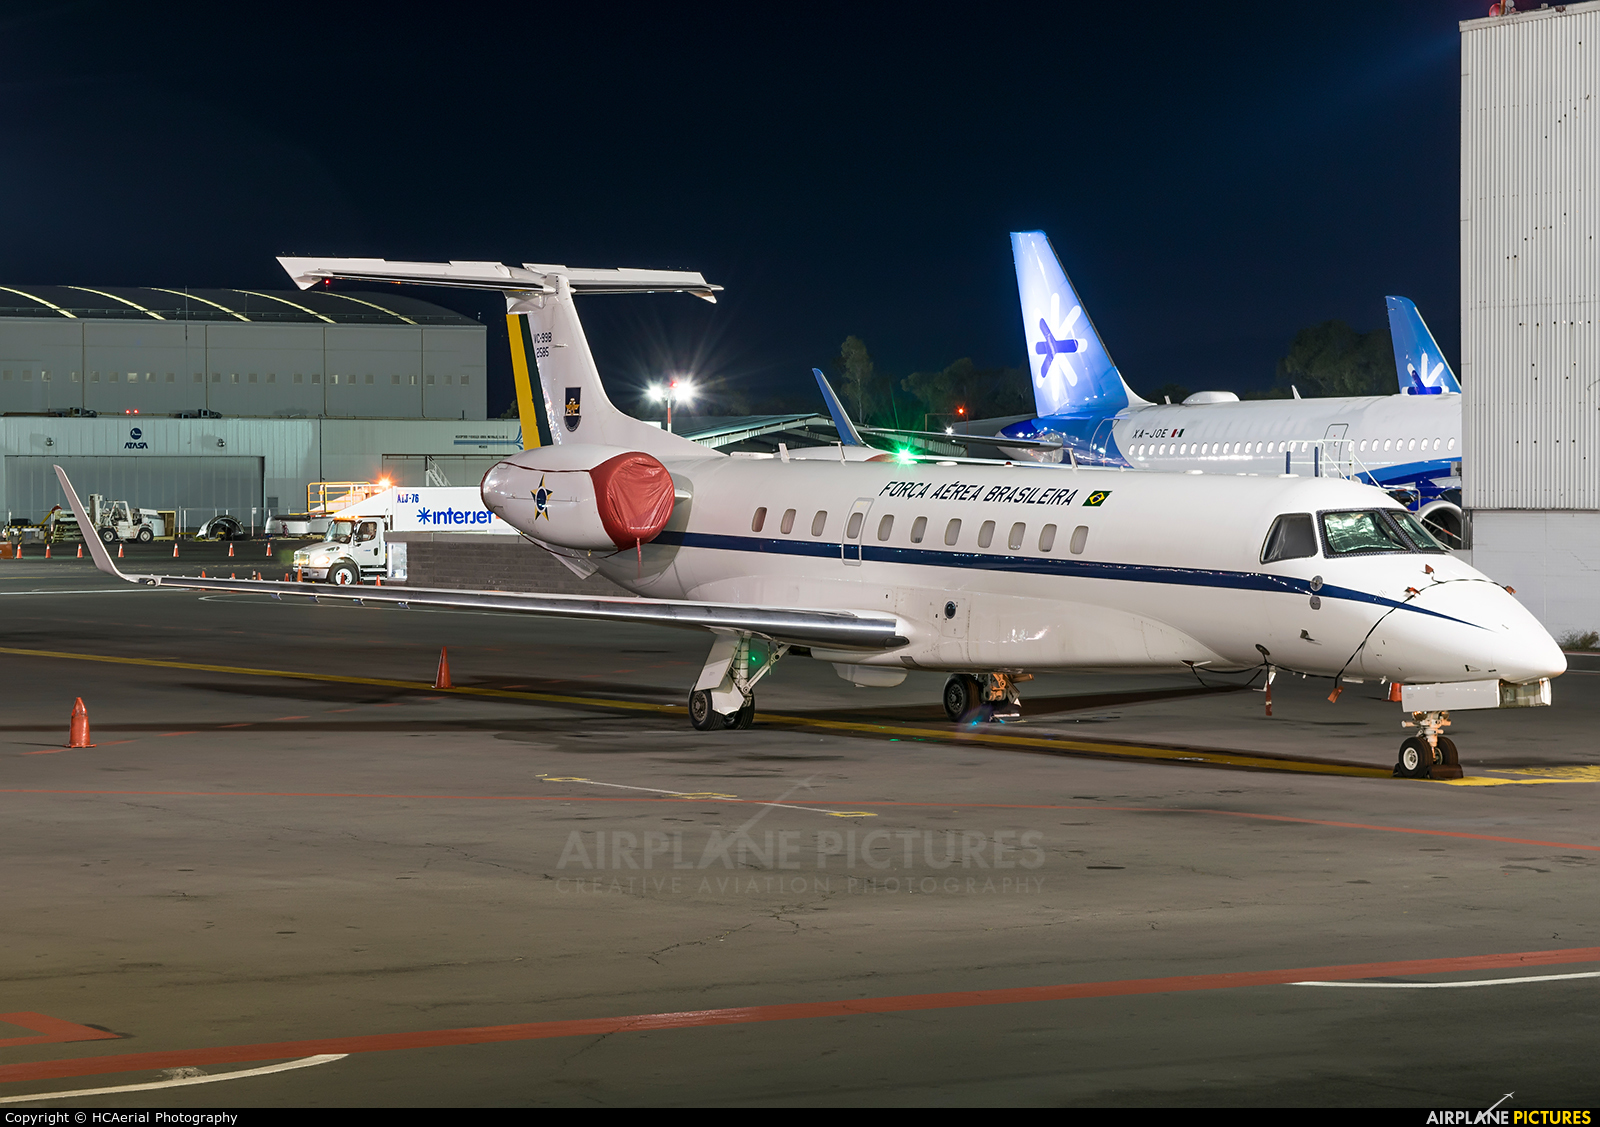 Brazil - Air Force 2585 aircraft at Mexico City - Licenciado Benito Juarez Intl